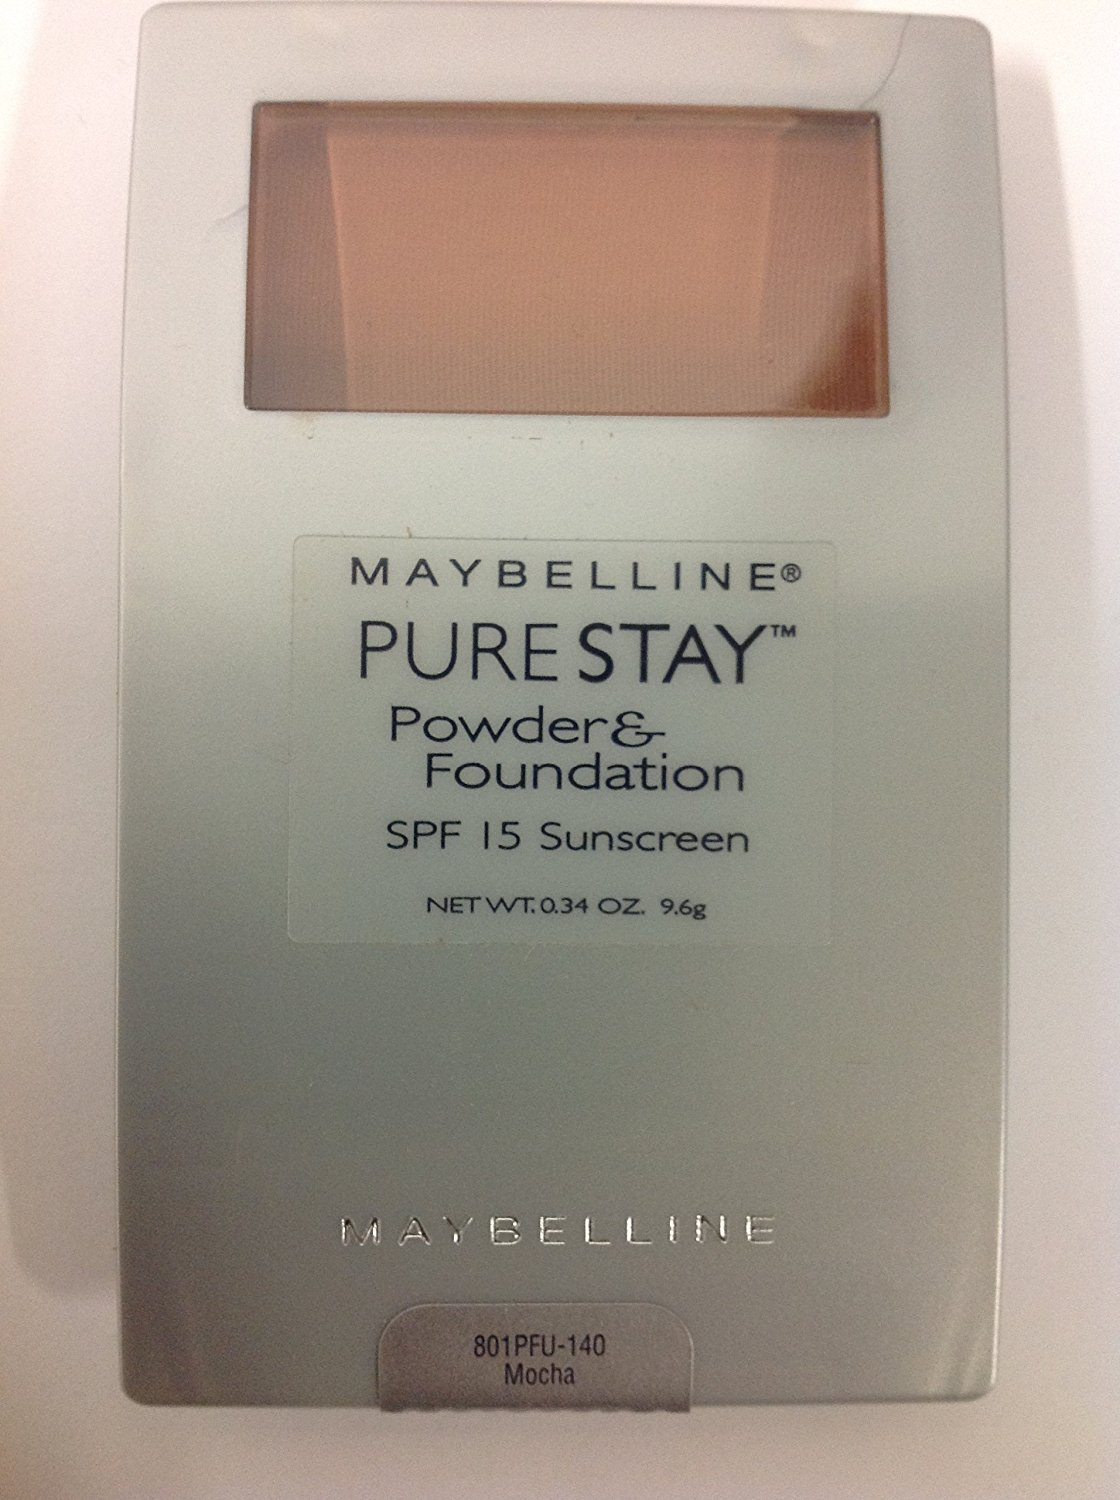 Pure Stay Powder Foundation by Maybelline #14